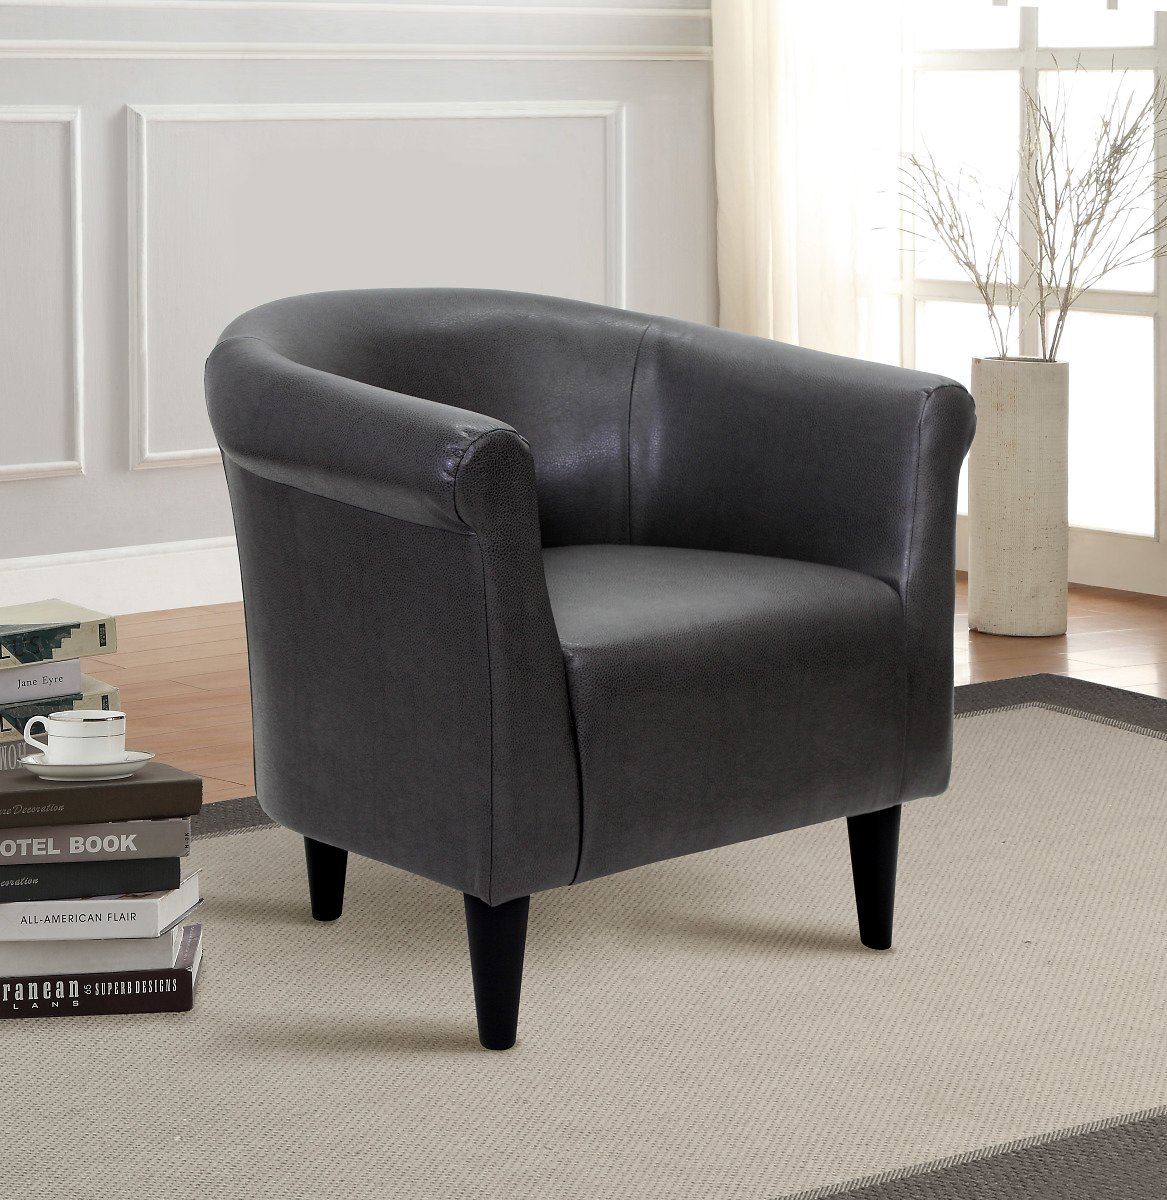 Mainstays Faux Leather Bucket Accent Chair JUST $99 + FREE Shipping (Reg $200)